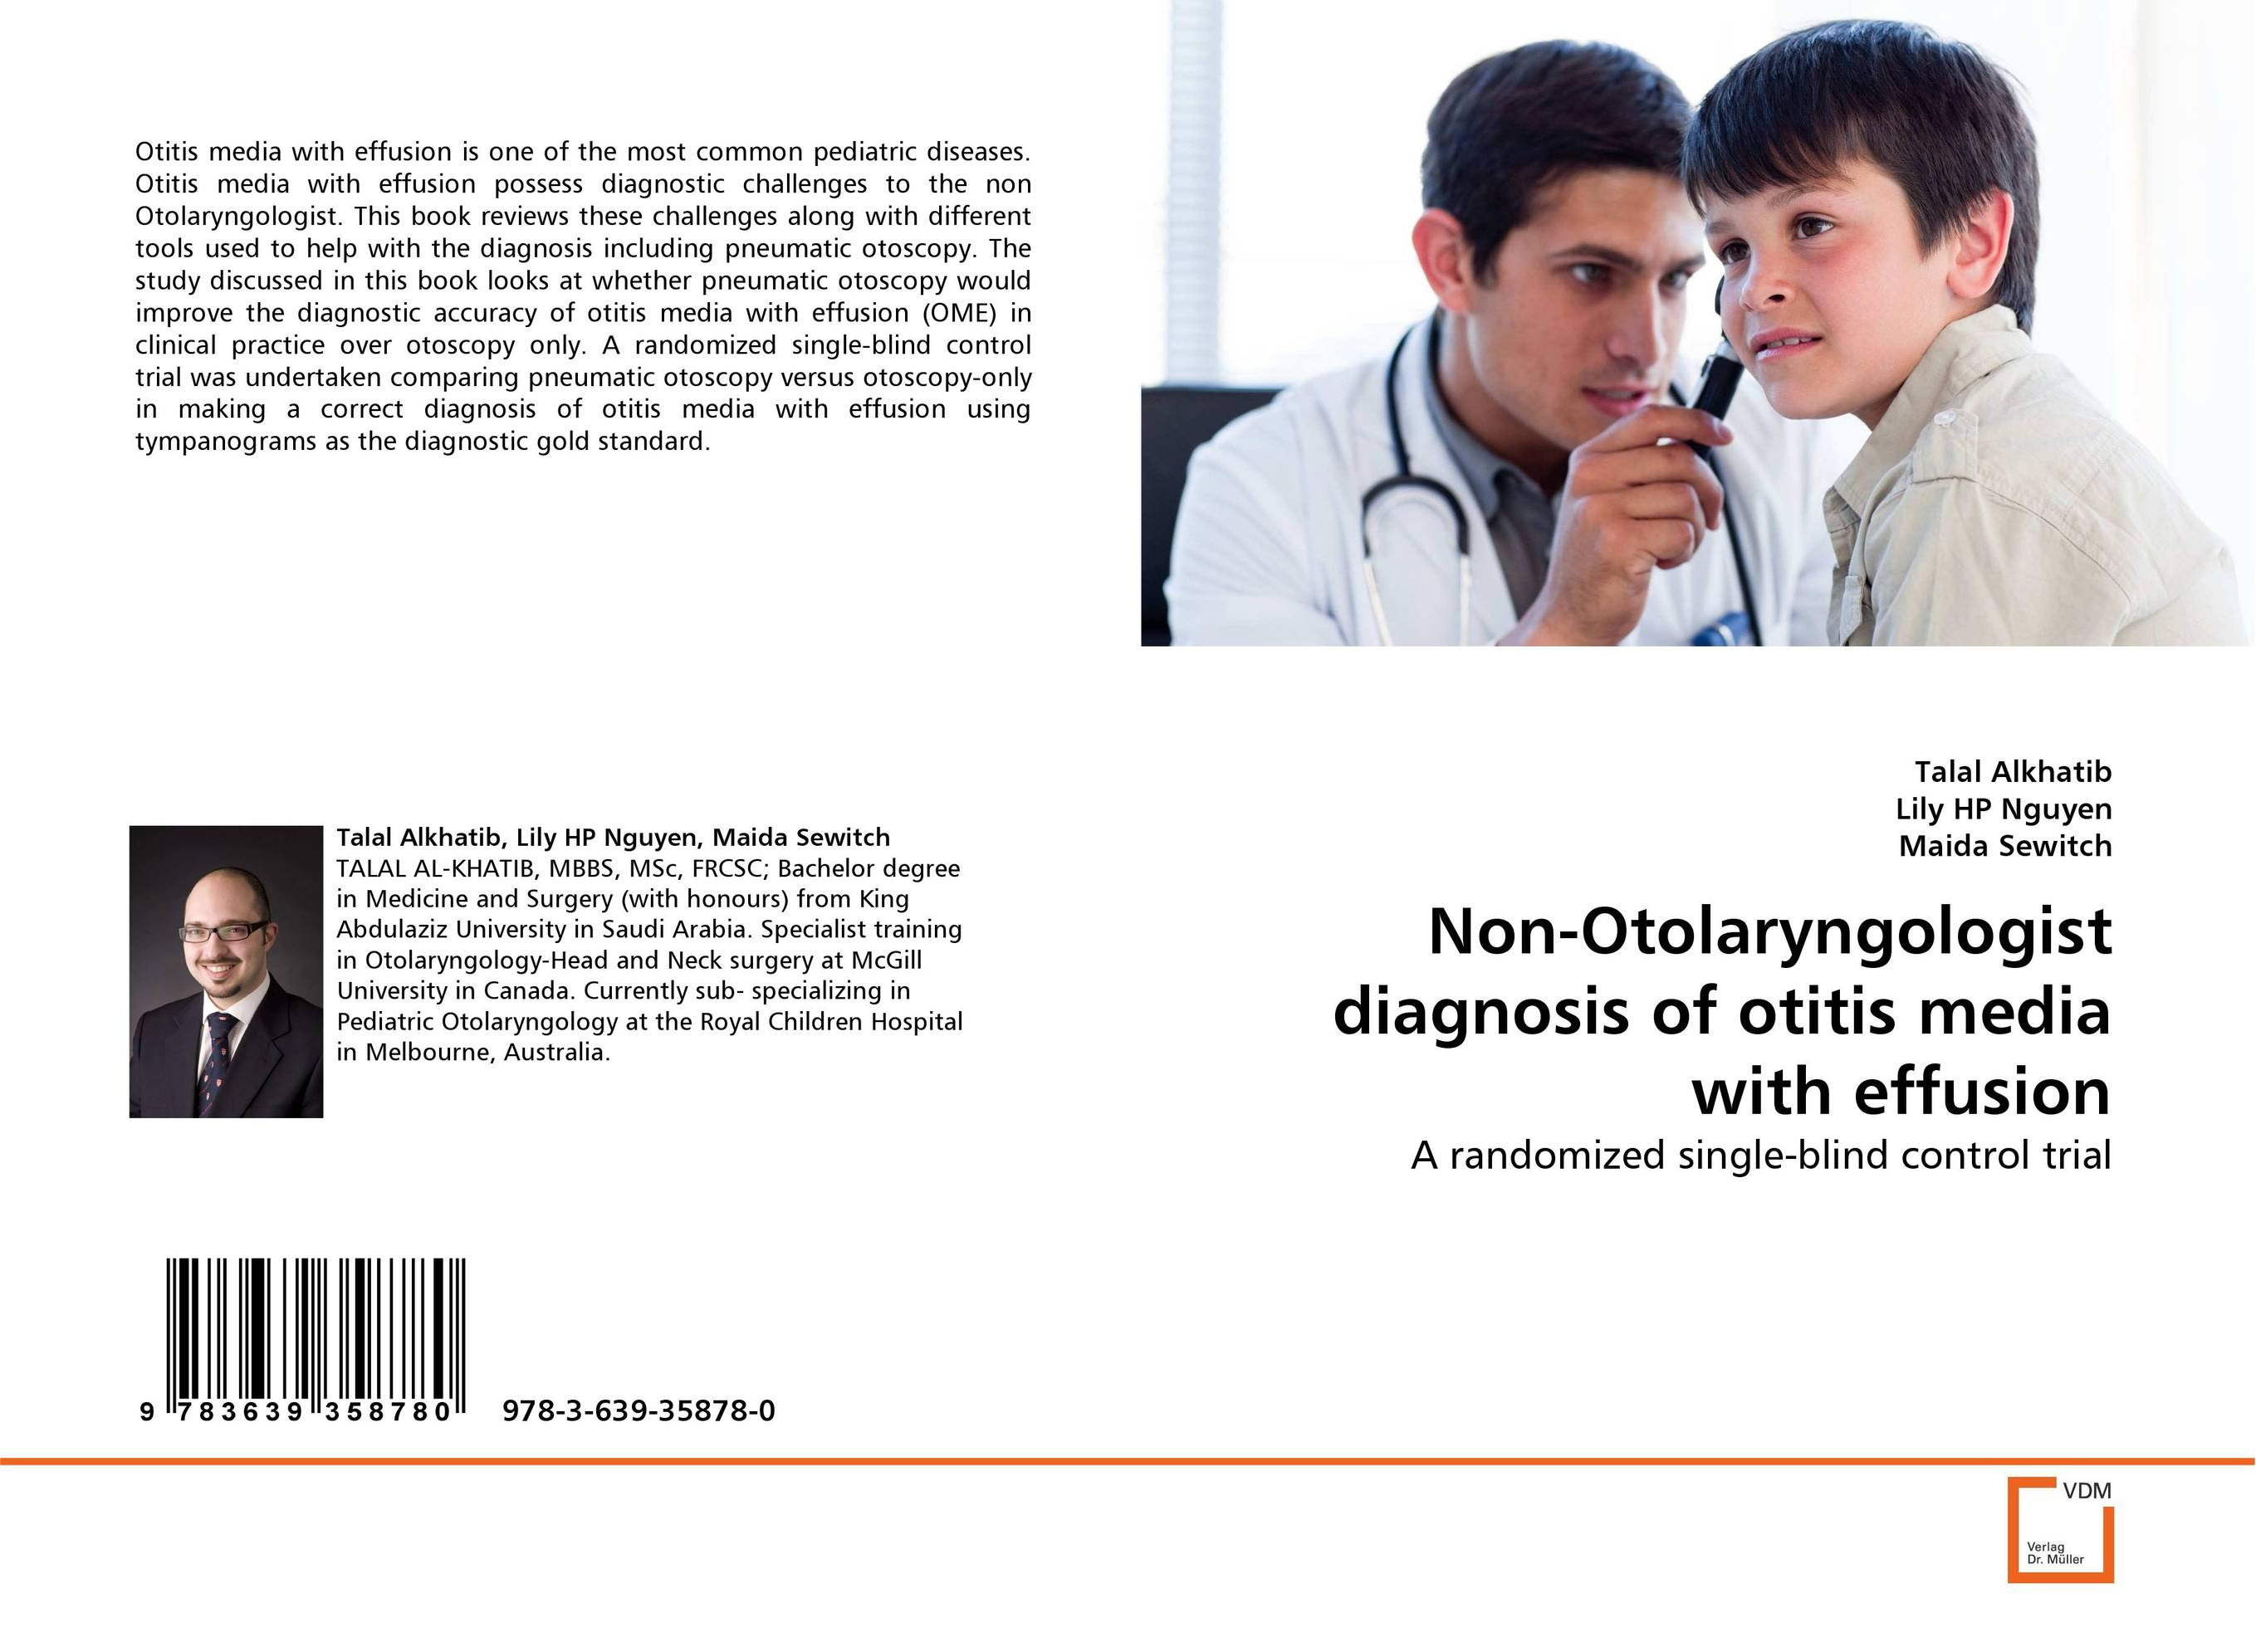 Non-Otolaryngologist diagnosis of otitis media with effusion